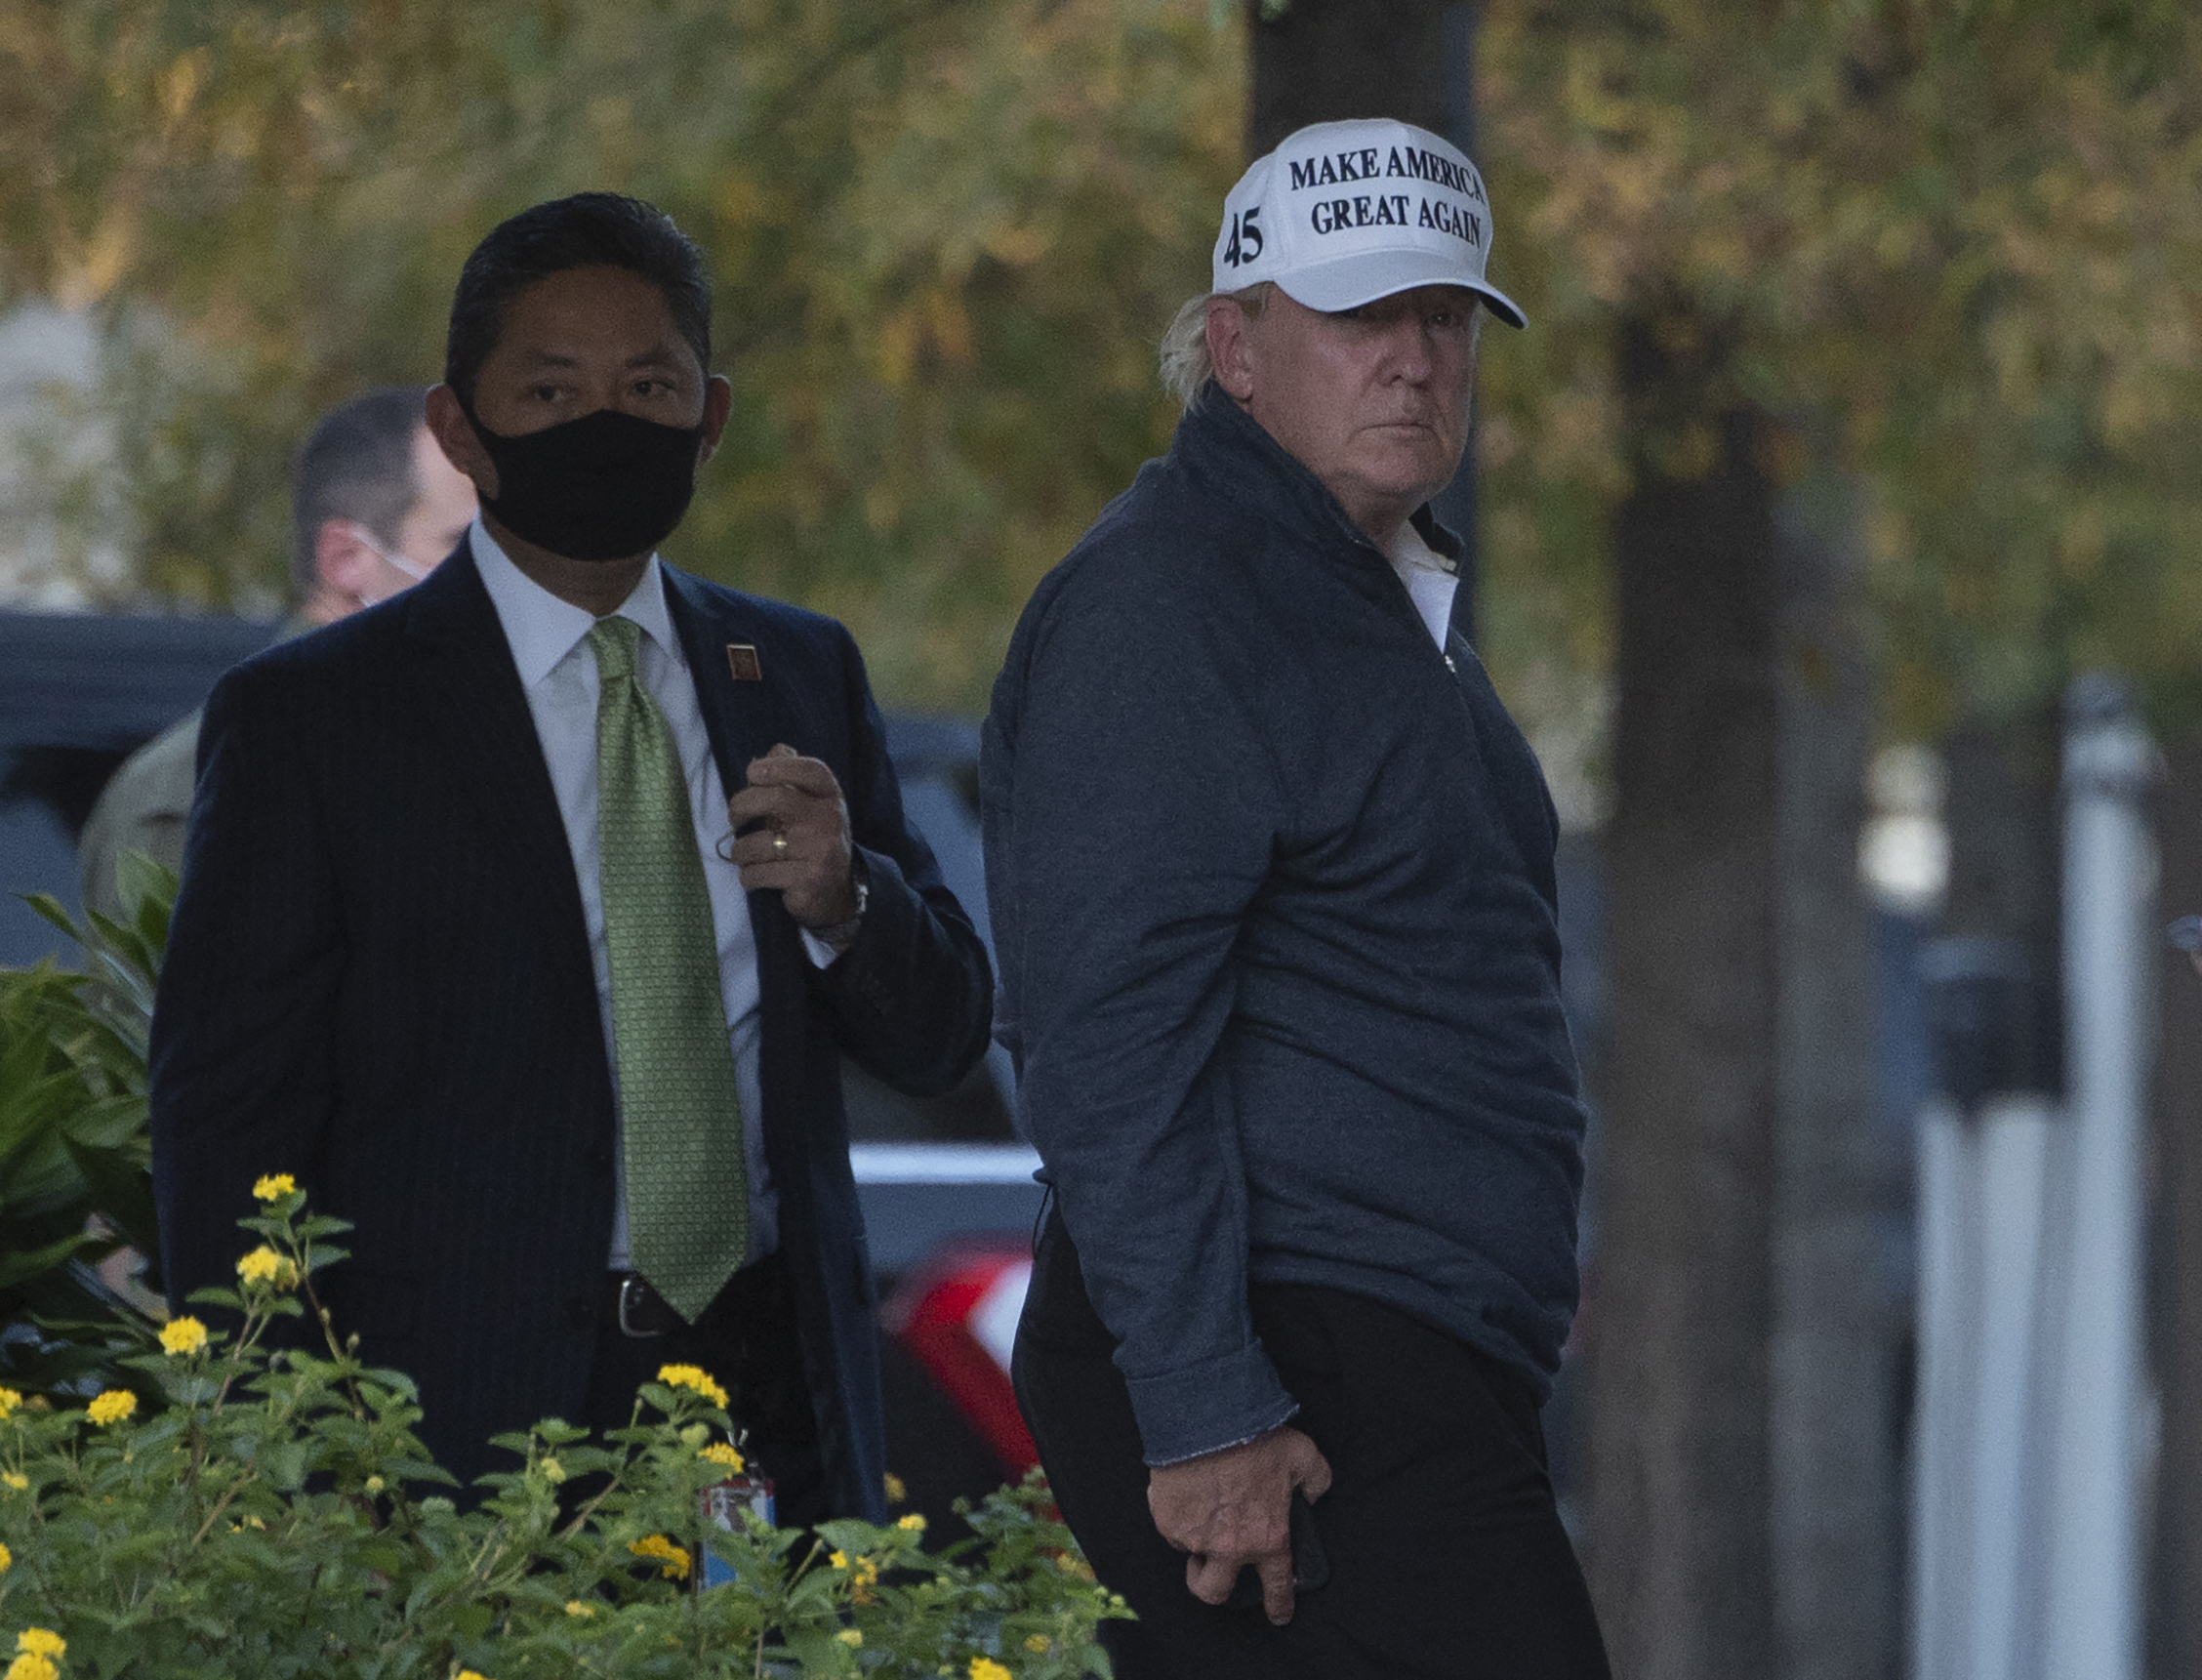 President Donald Trump returns to the White House from playing golf after Joe Biden was declared the winner of the 2020 presidential election in Washington, DC on November 7, 2020.